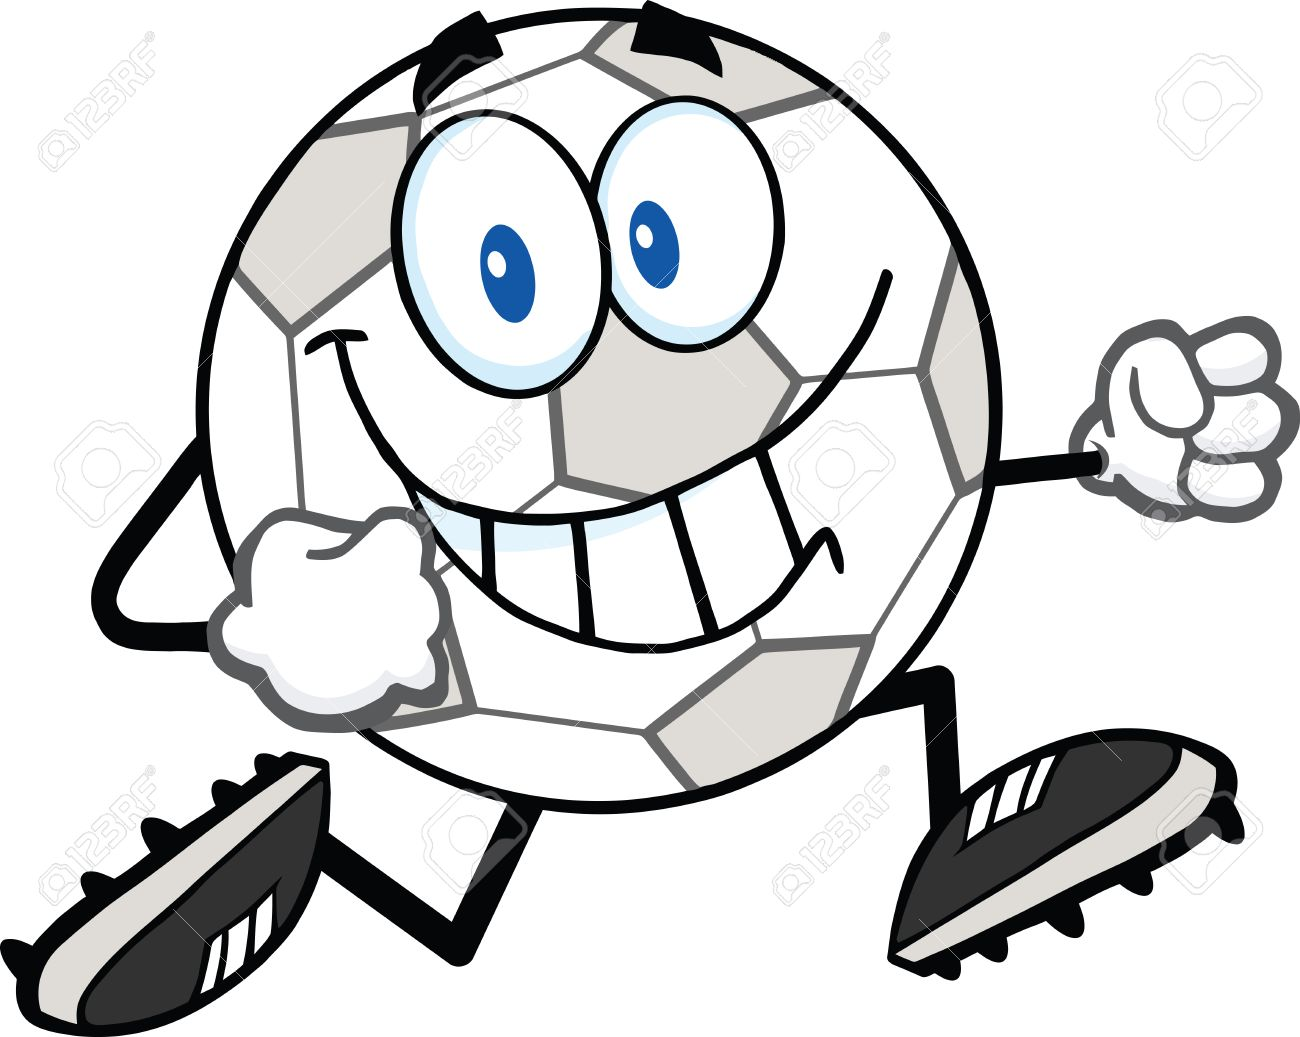 http://previews.123rf.com/images/chudtsankov/chudtsankov1403/chudtsankov140300011/26378917-Smiling-Soccer-Ball-Cartoon-Character-Running-Illustration-Isolated-on-white-Stock-Vector.jpg